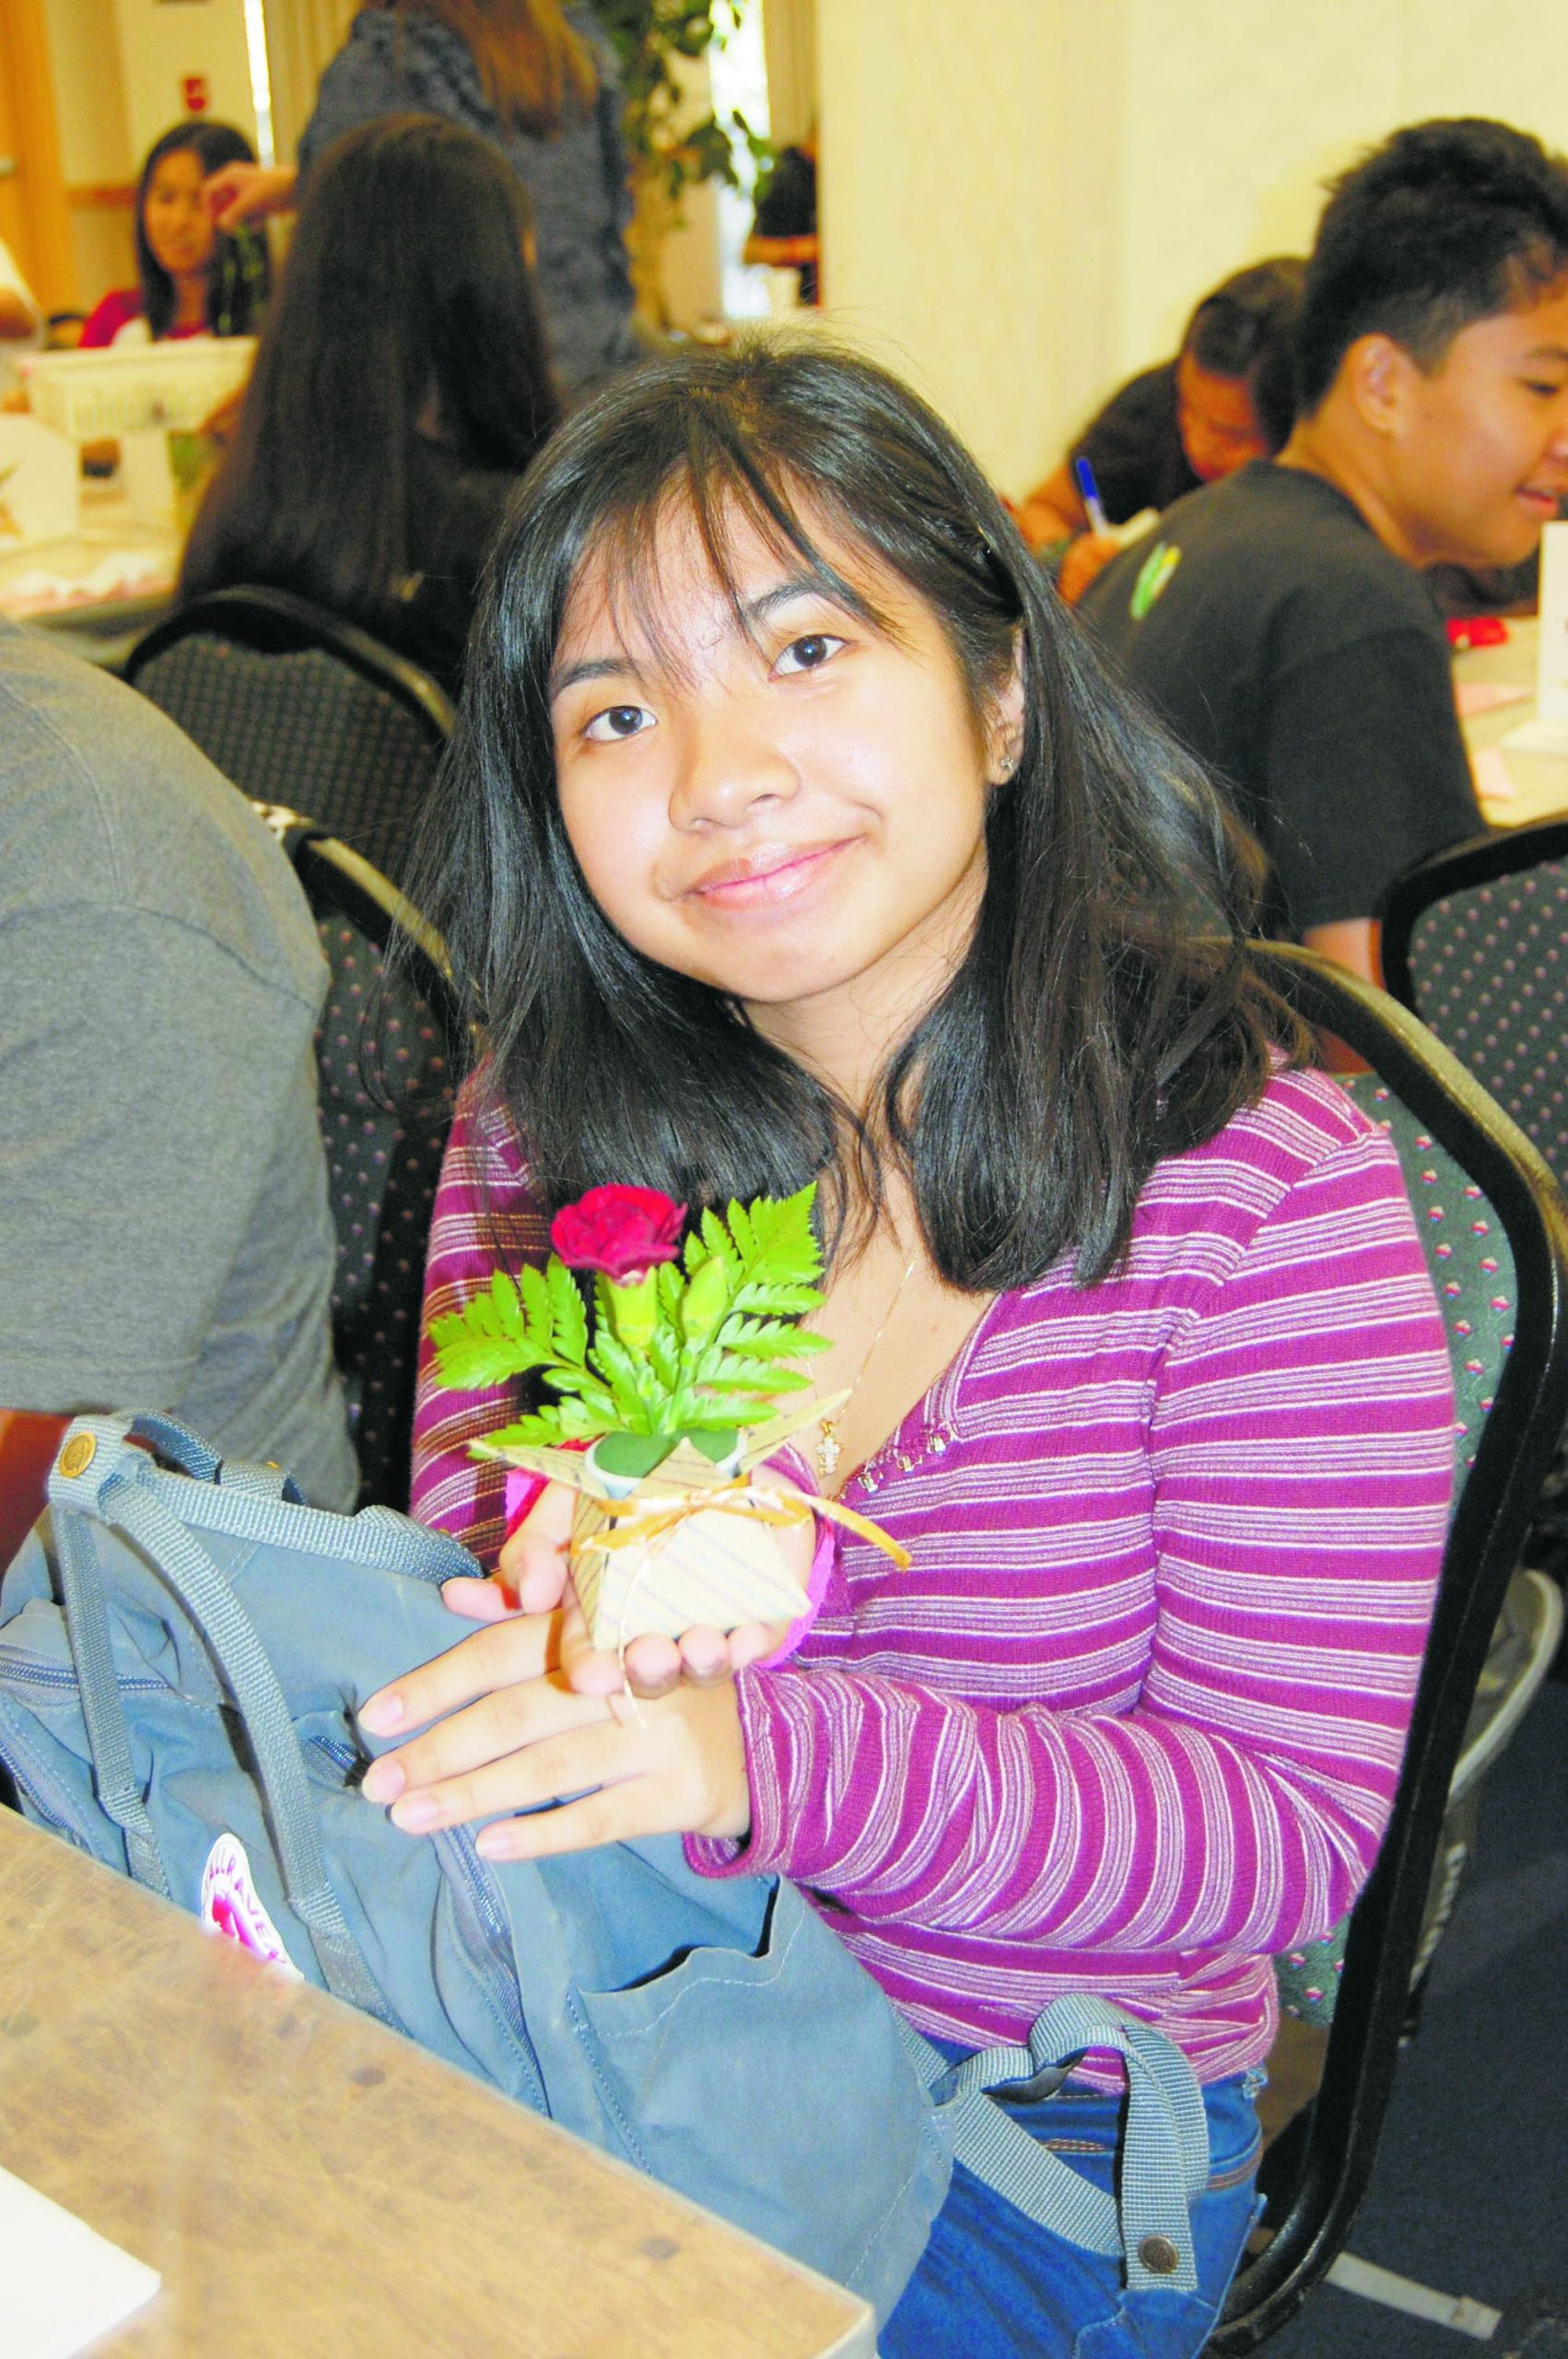 Meagan Reese of Kailua High School shows off her flower arrangement. Dawn Kanno from MOA Hawaii taught the ikebana workshop.